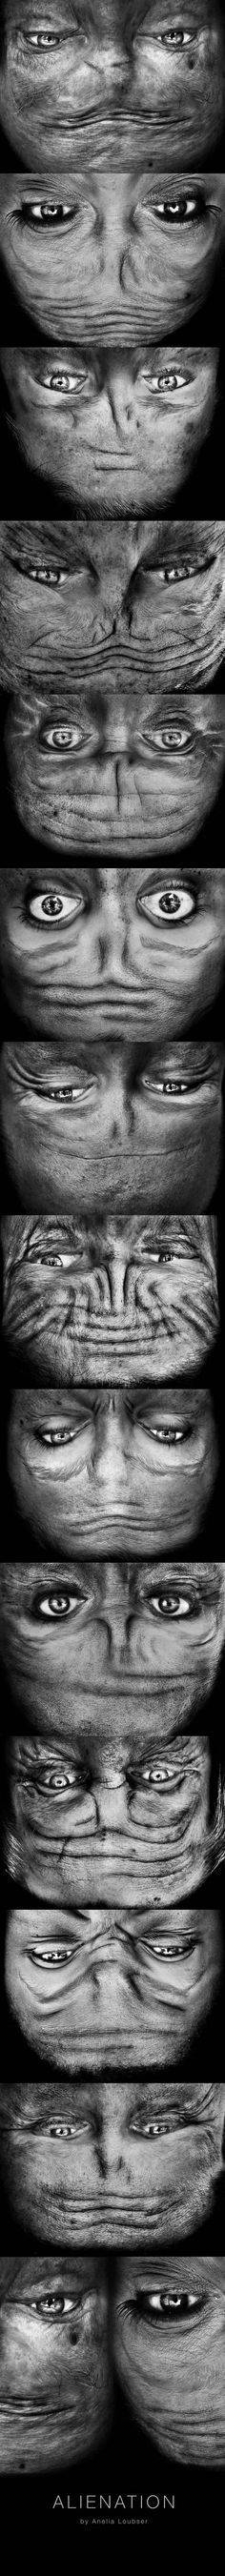 14 Photos Prove That Upside-Down Faces Look A Lot Like Aliens.. ridiculously awesome!!